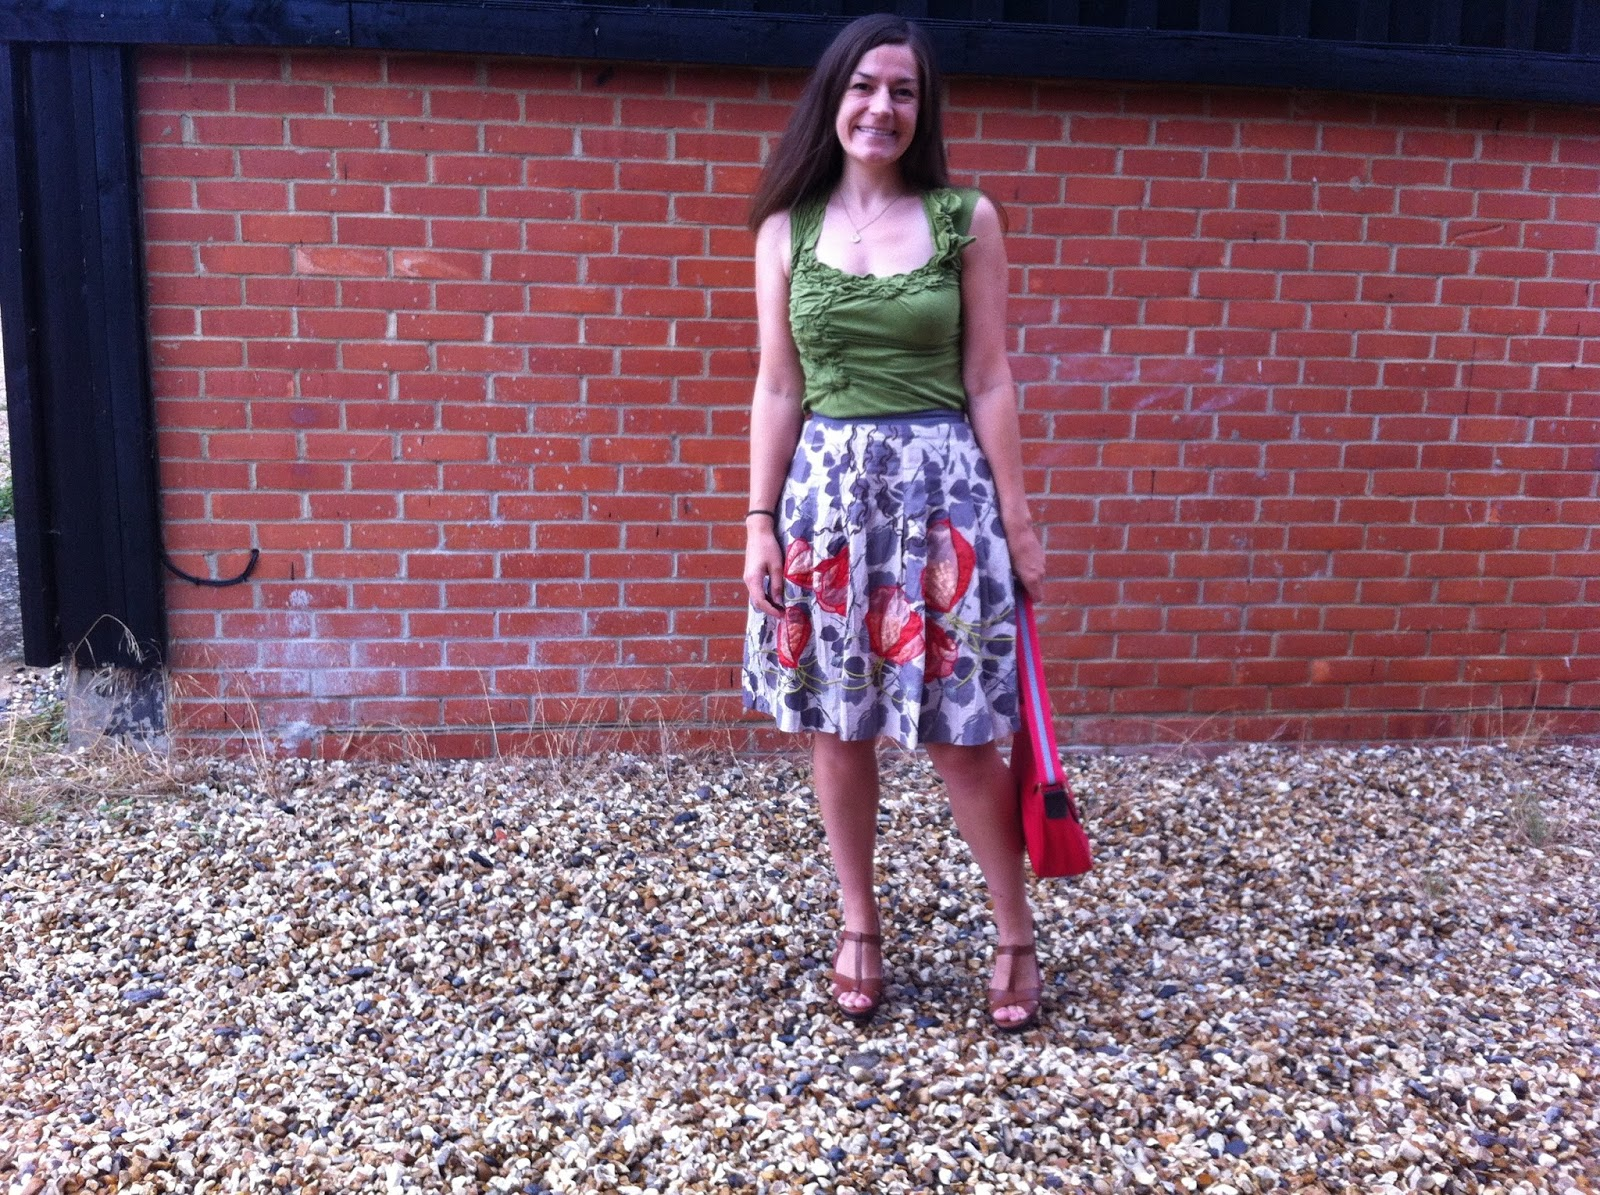 e7f6c4905 Skirt - Glowing Leaf Skirt by Floreat at Anthropologie, 2010 (worn here  here here) Shoes - Boden Strappy Heels, s/s 2013 (worn here) Bag - Boden  Oil ...